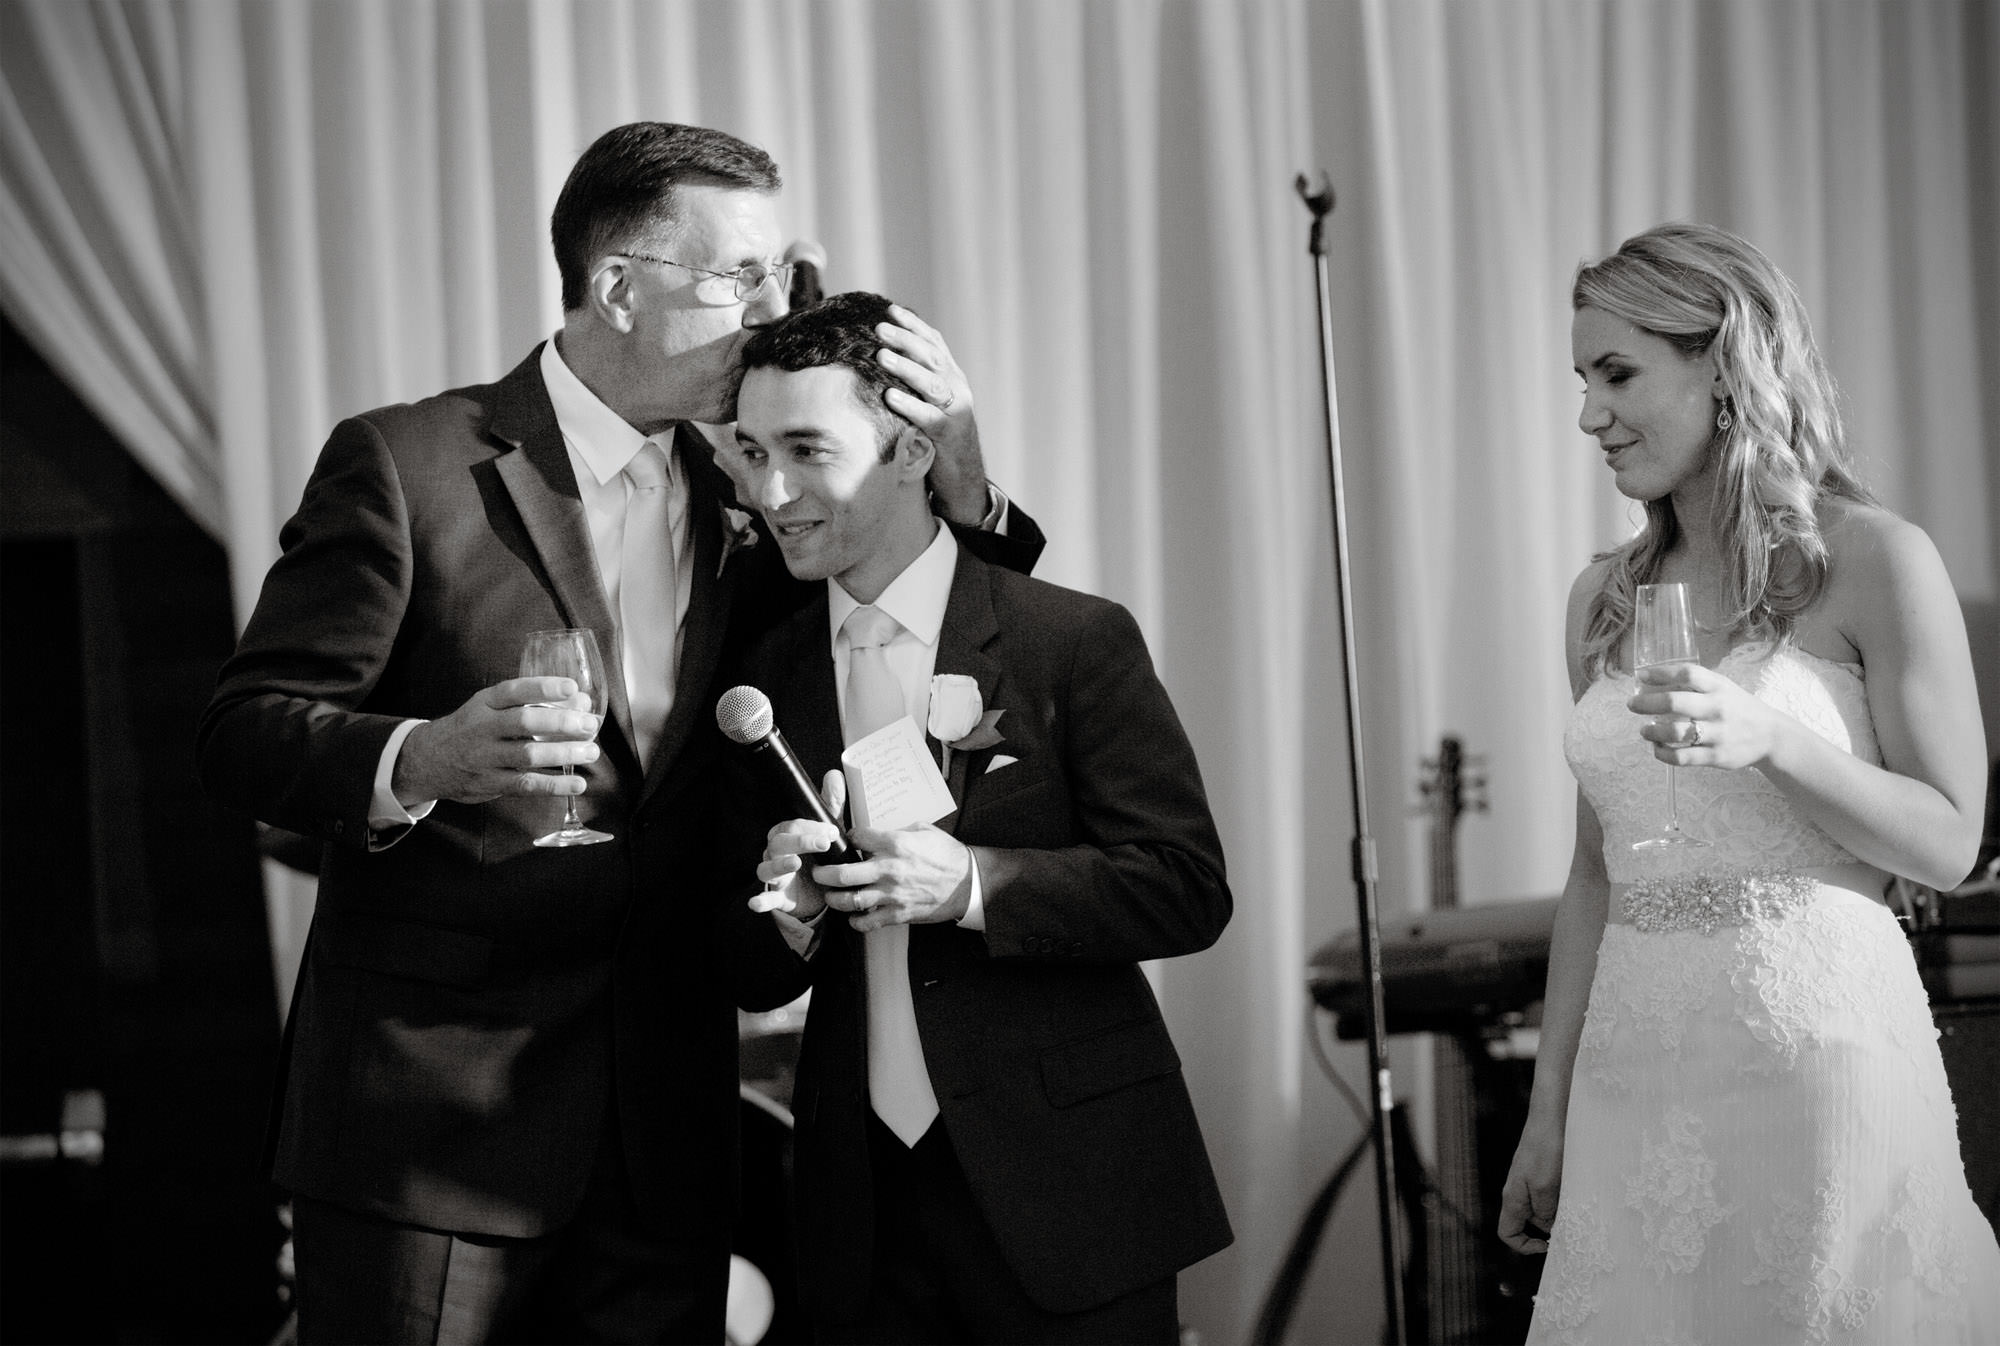 The groom is hugged by the father of the bride during the Park Hyatt DC wedding reception.